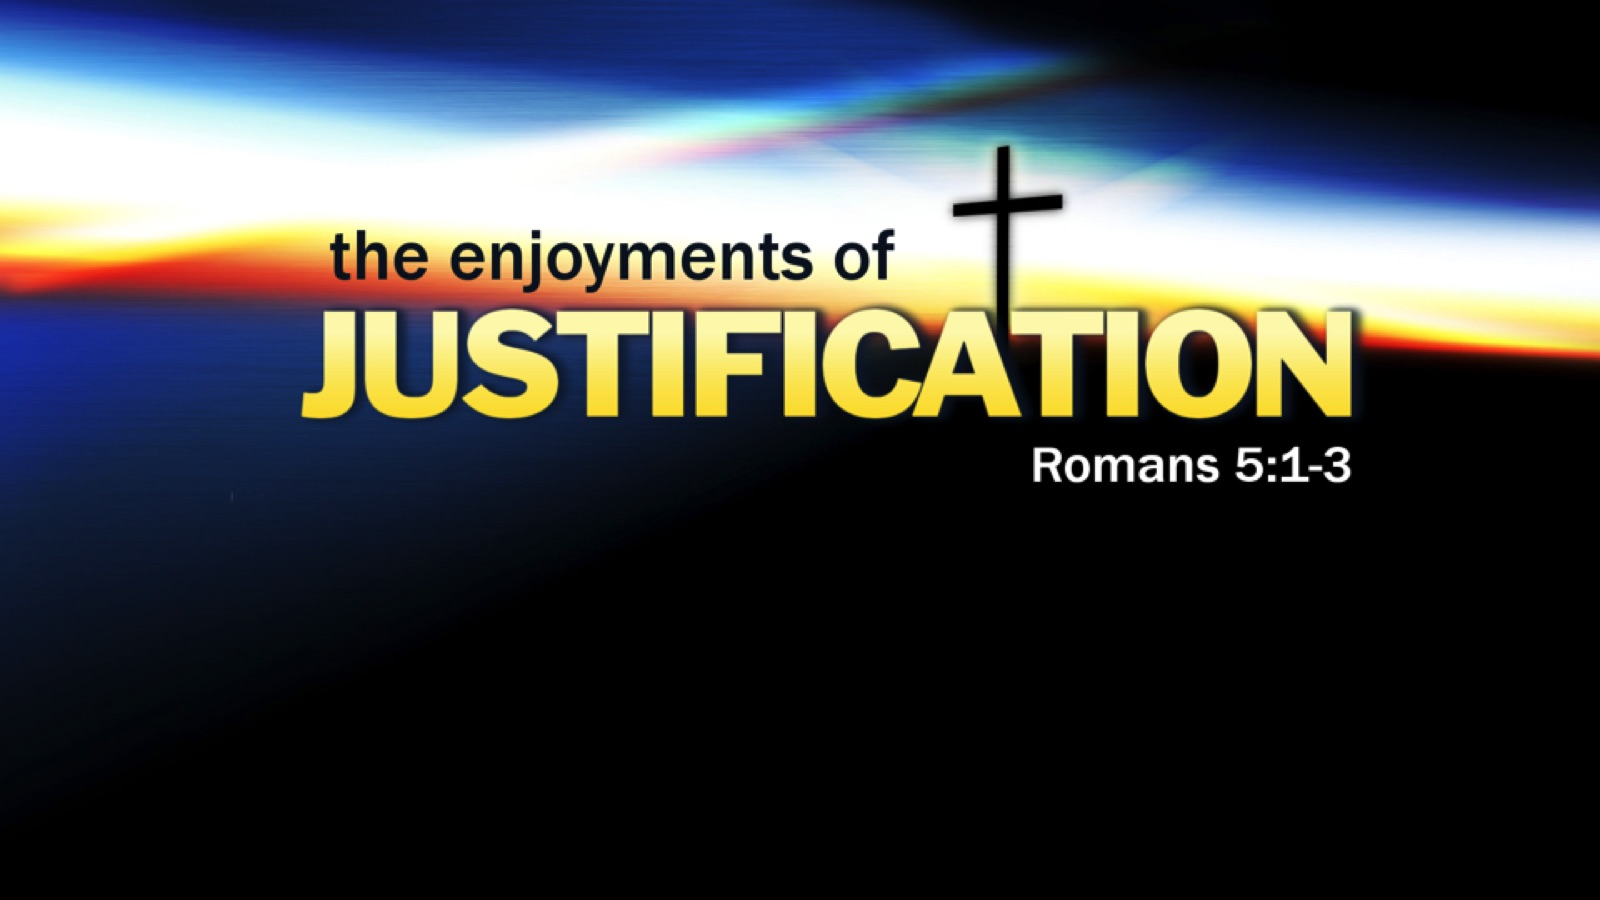 The Enjoyments of Justification